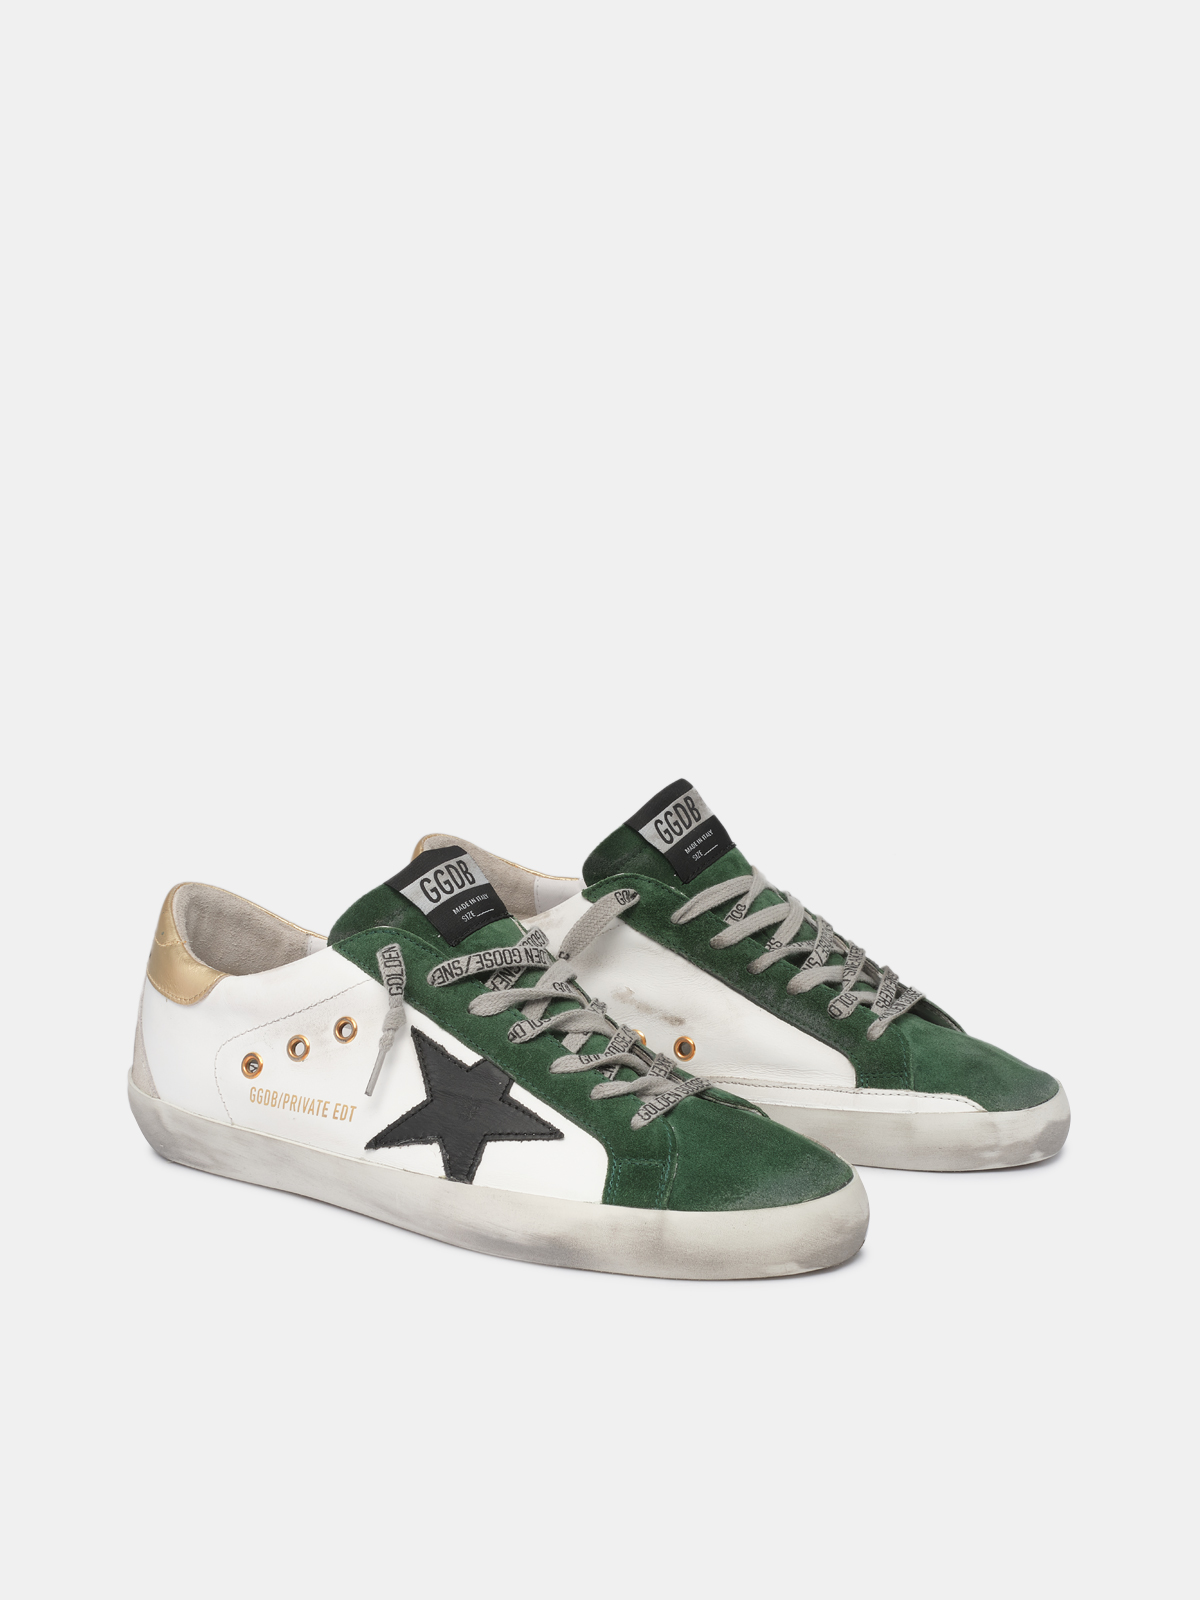 Golden Goose - White and green Super-Star sneakers in